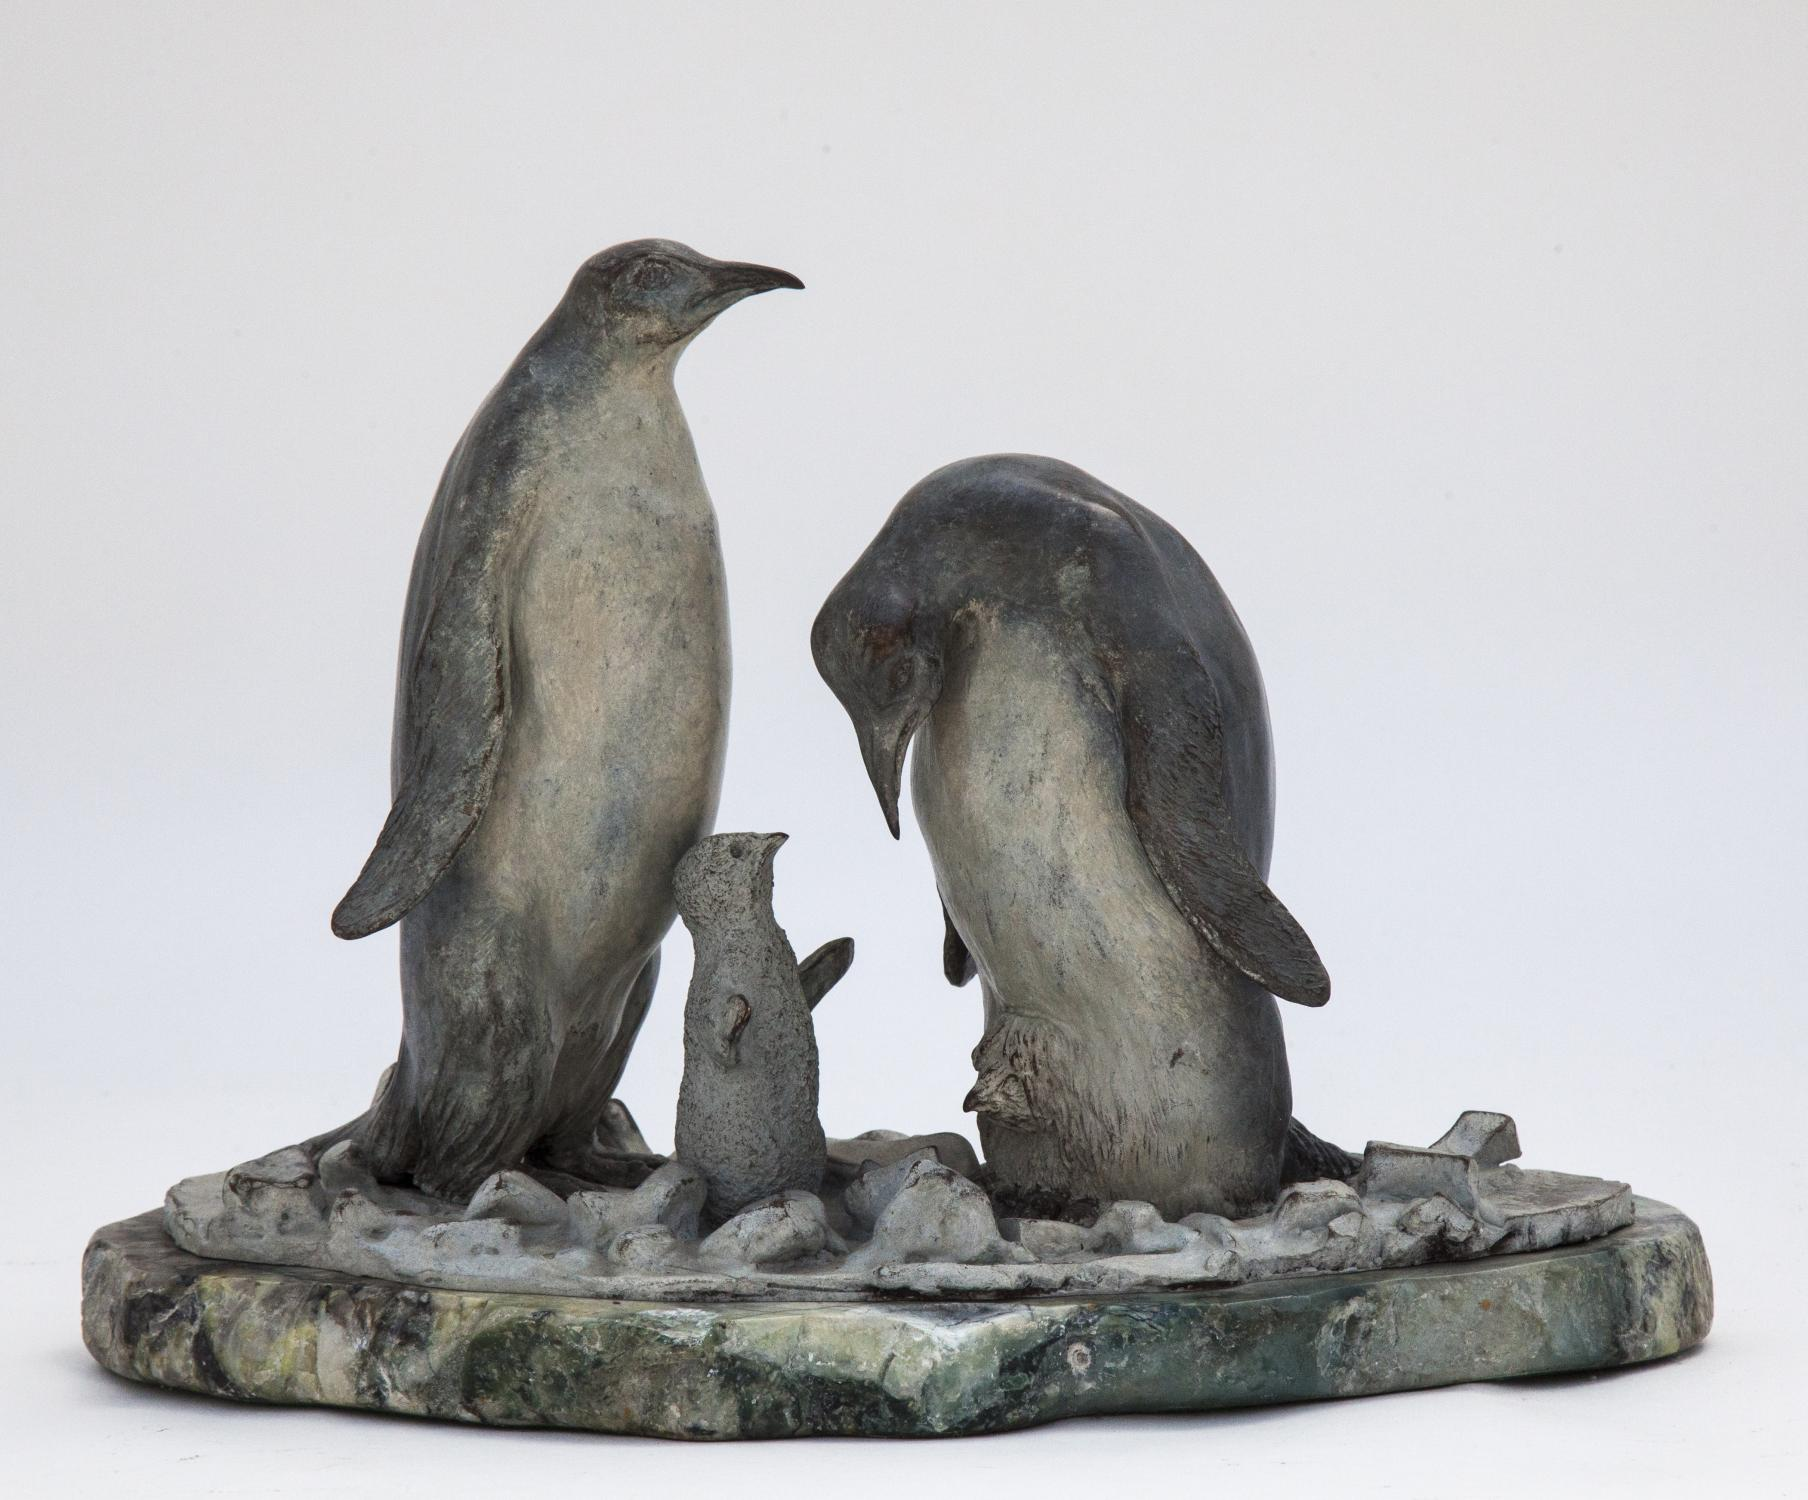 Lot 10 - Sculpture: ▲ Annette Yarrow, (born 1932), Penguin Family, Bronze on stone, Signed edition 1 of 9,